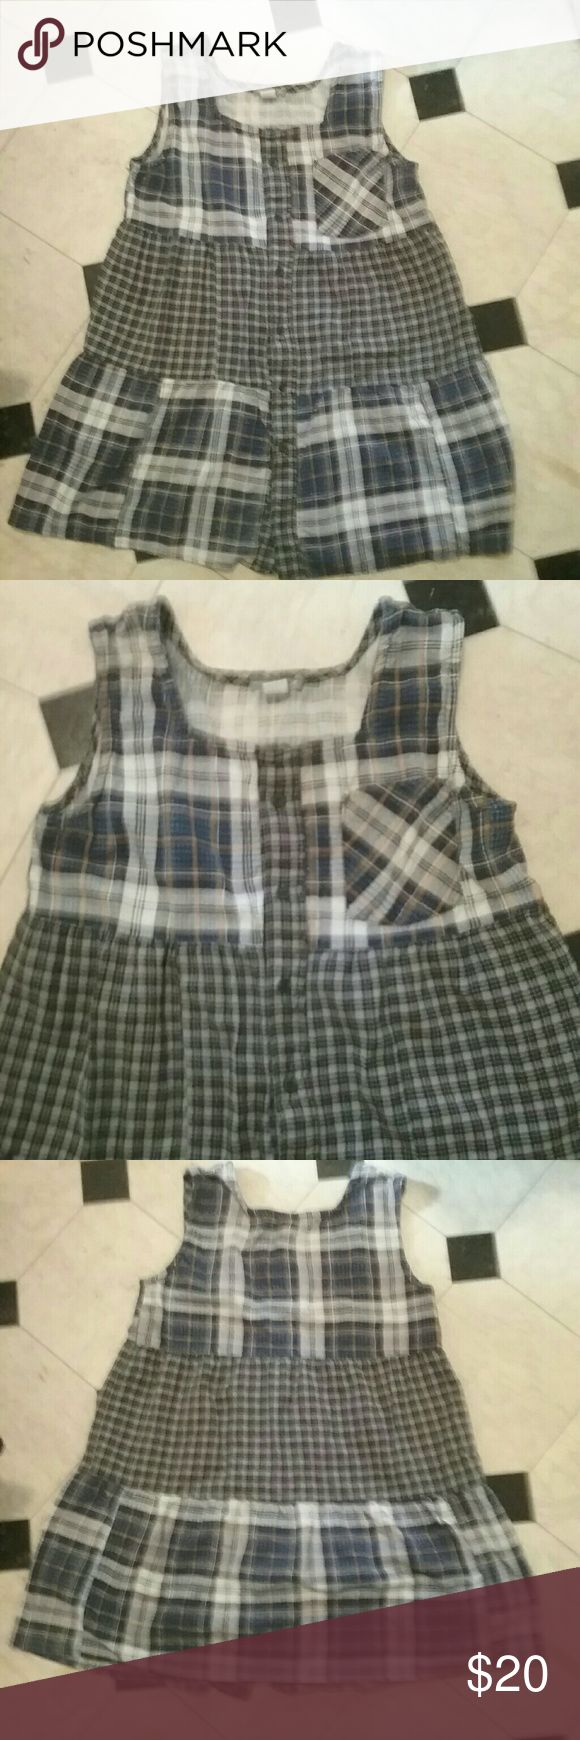 Urban Renewal flannel tunic tank Blue, Black, white and tan tunic tank in soft lightweight cotton flannel with buttons down the front. Gently worn a few times. Urban Renewal Tops Tunics